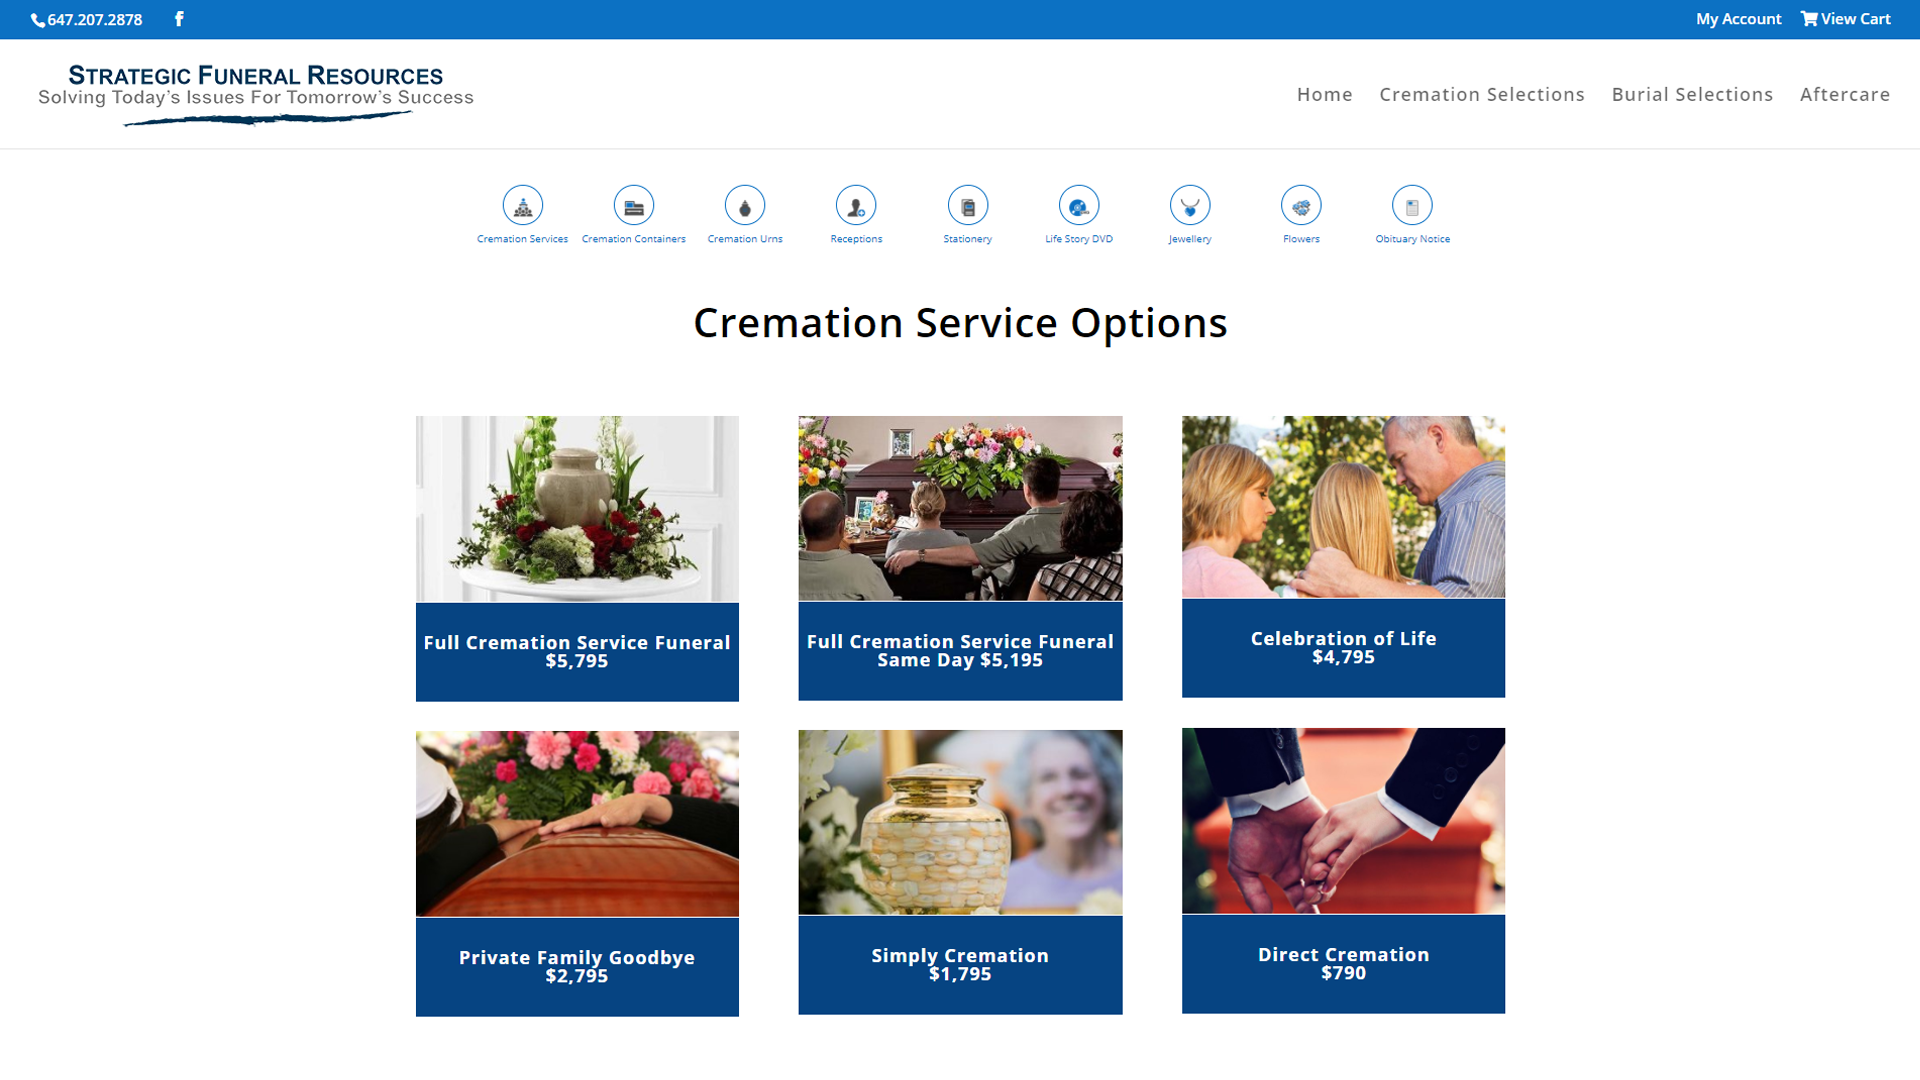 SFR Cremation Services